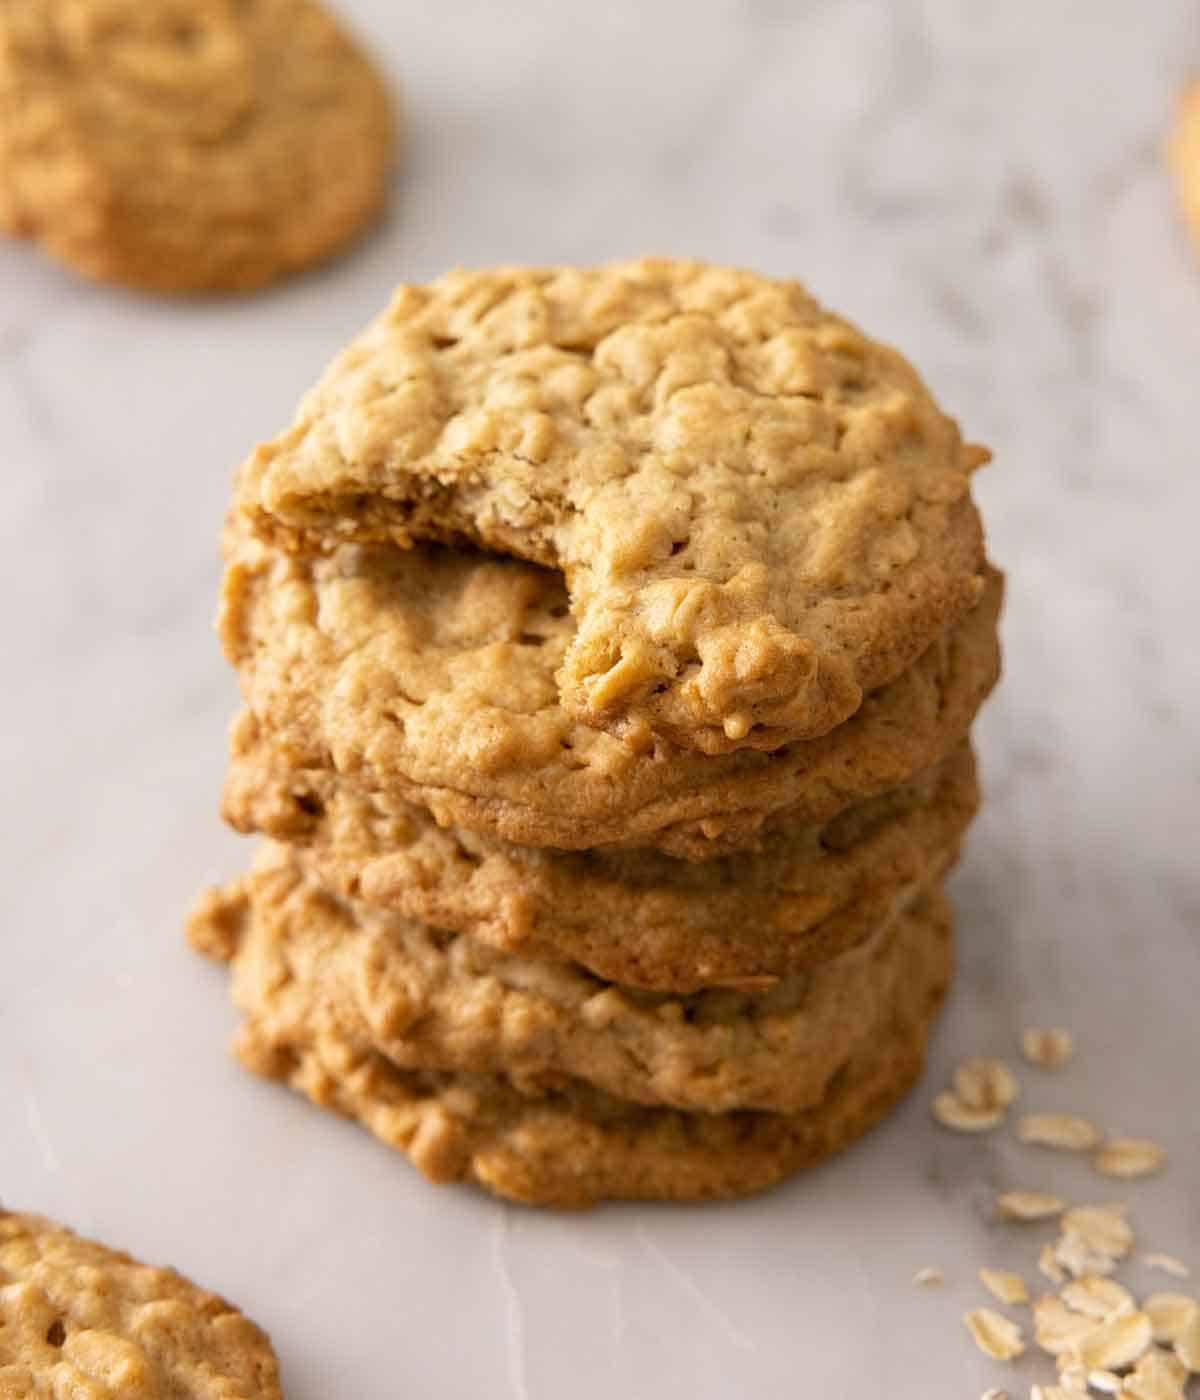 A stack of four peanut butter oatmeal cookies, the top one with a bite taken out.